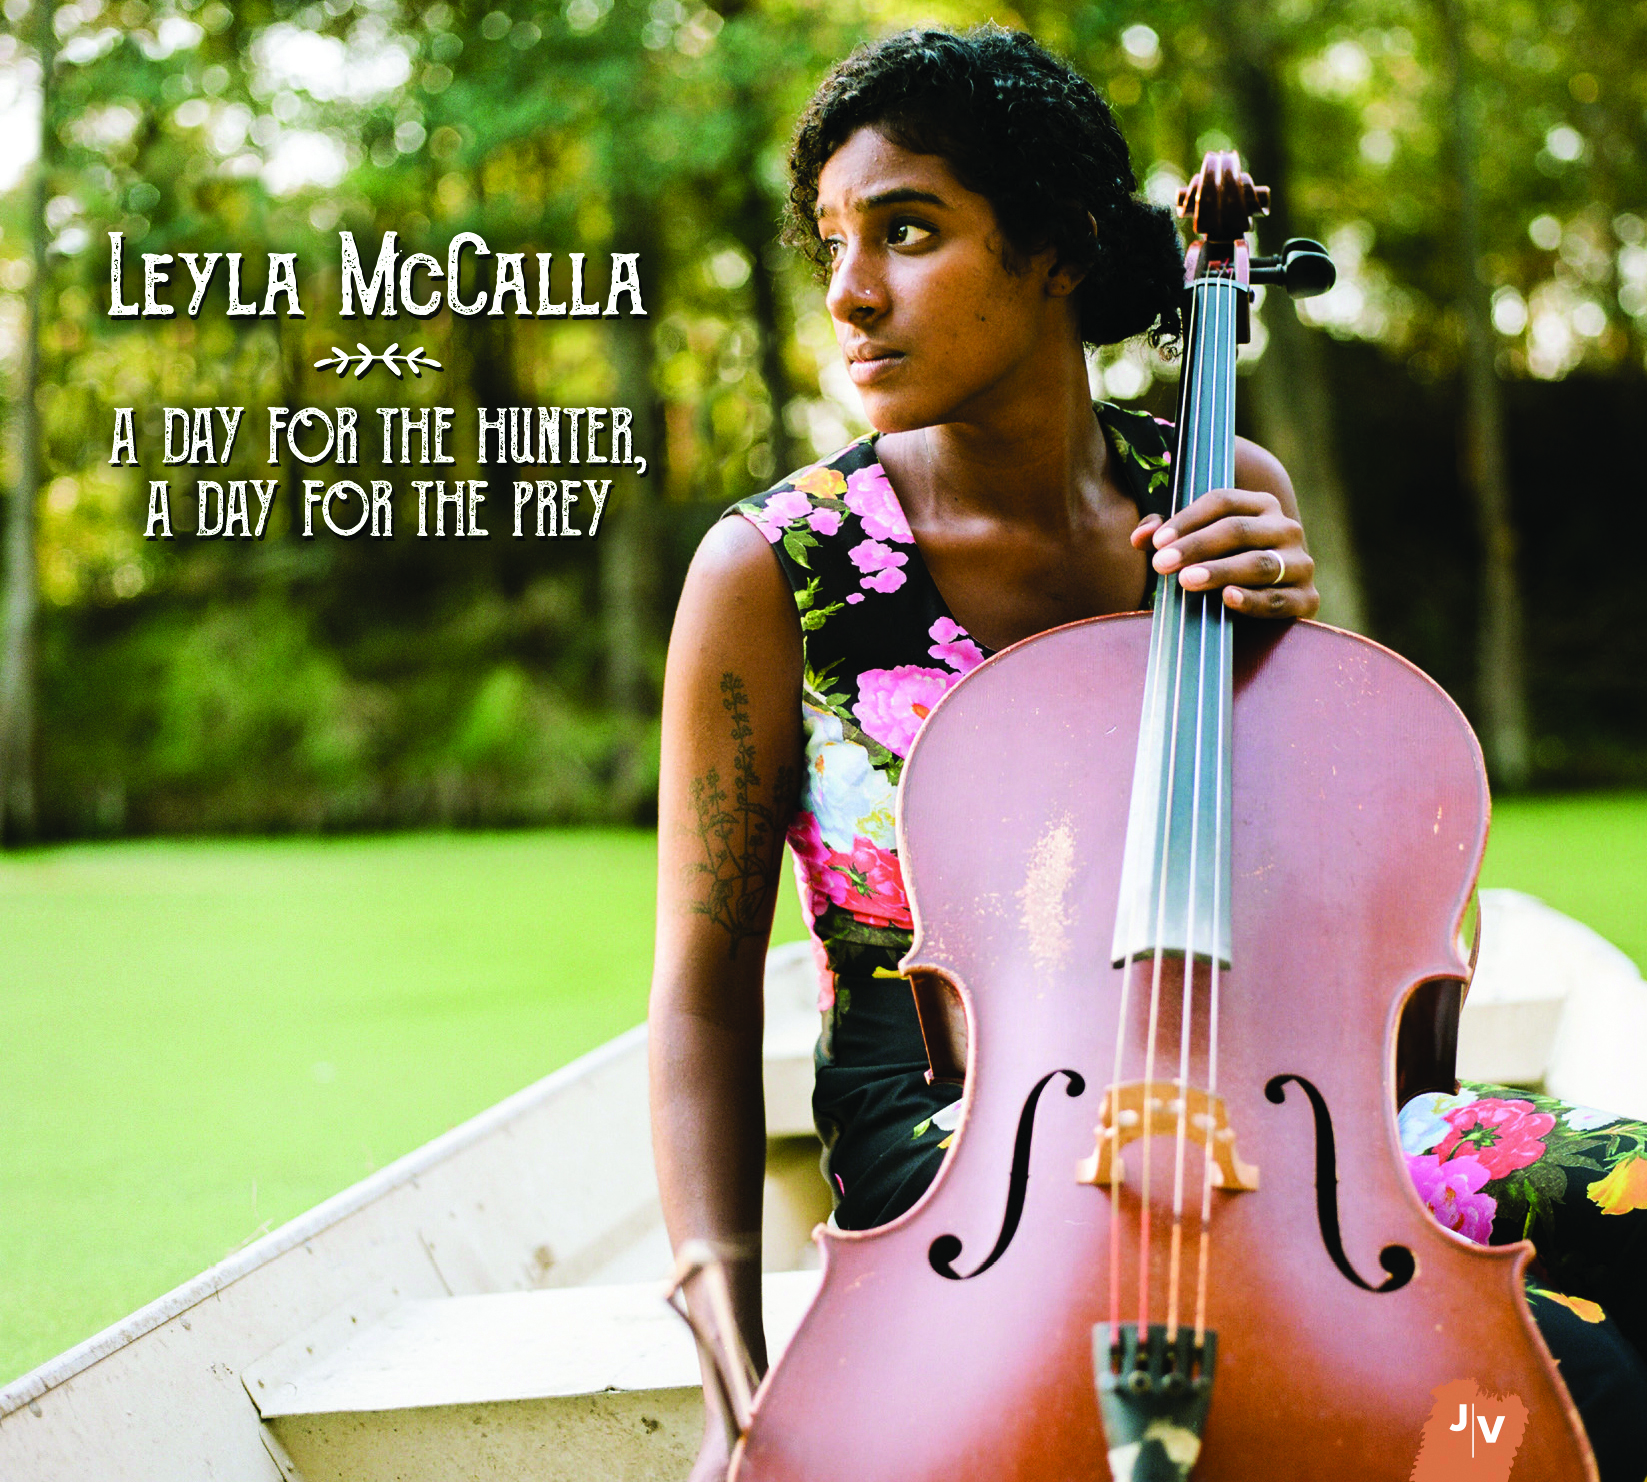 Leyla McCalla - A Day for the Hunter, A Day for the Prey Cover